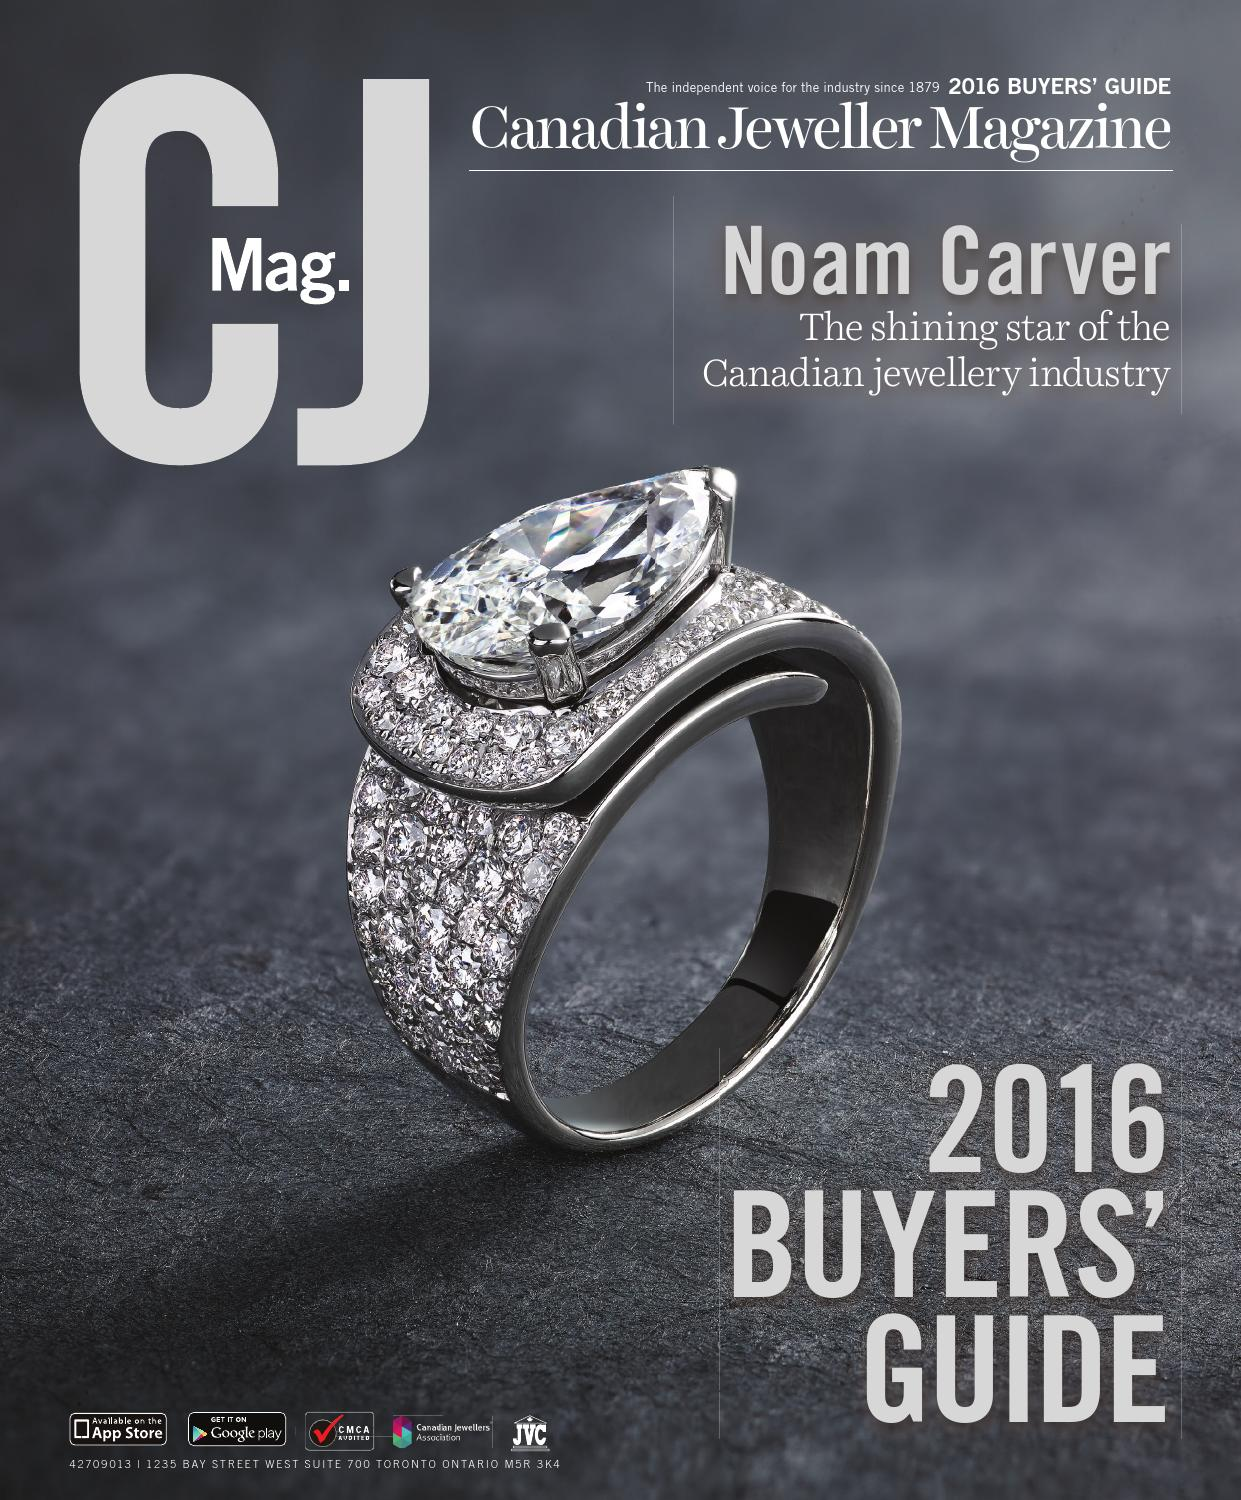 Cj 2016 Buyers Guide By Canadian Jeweller Magazine Issuu